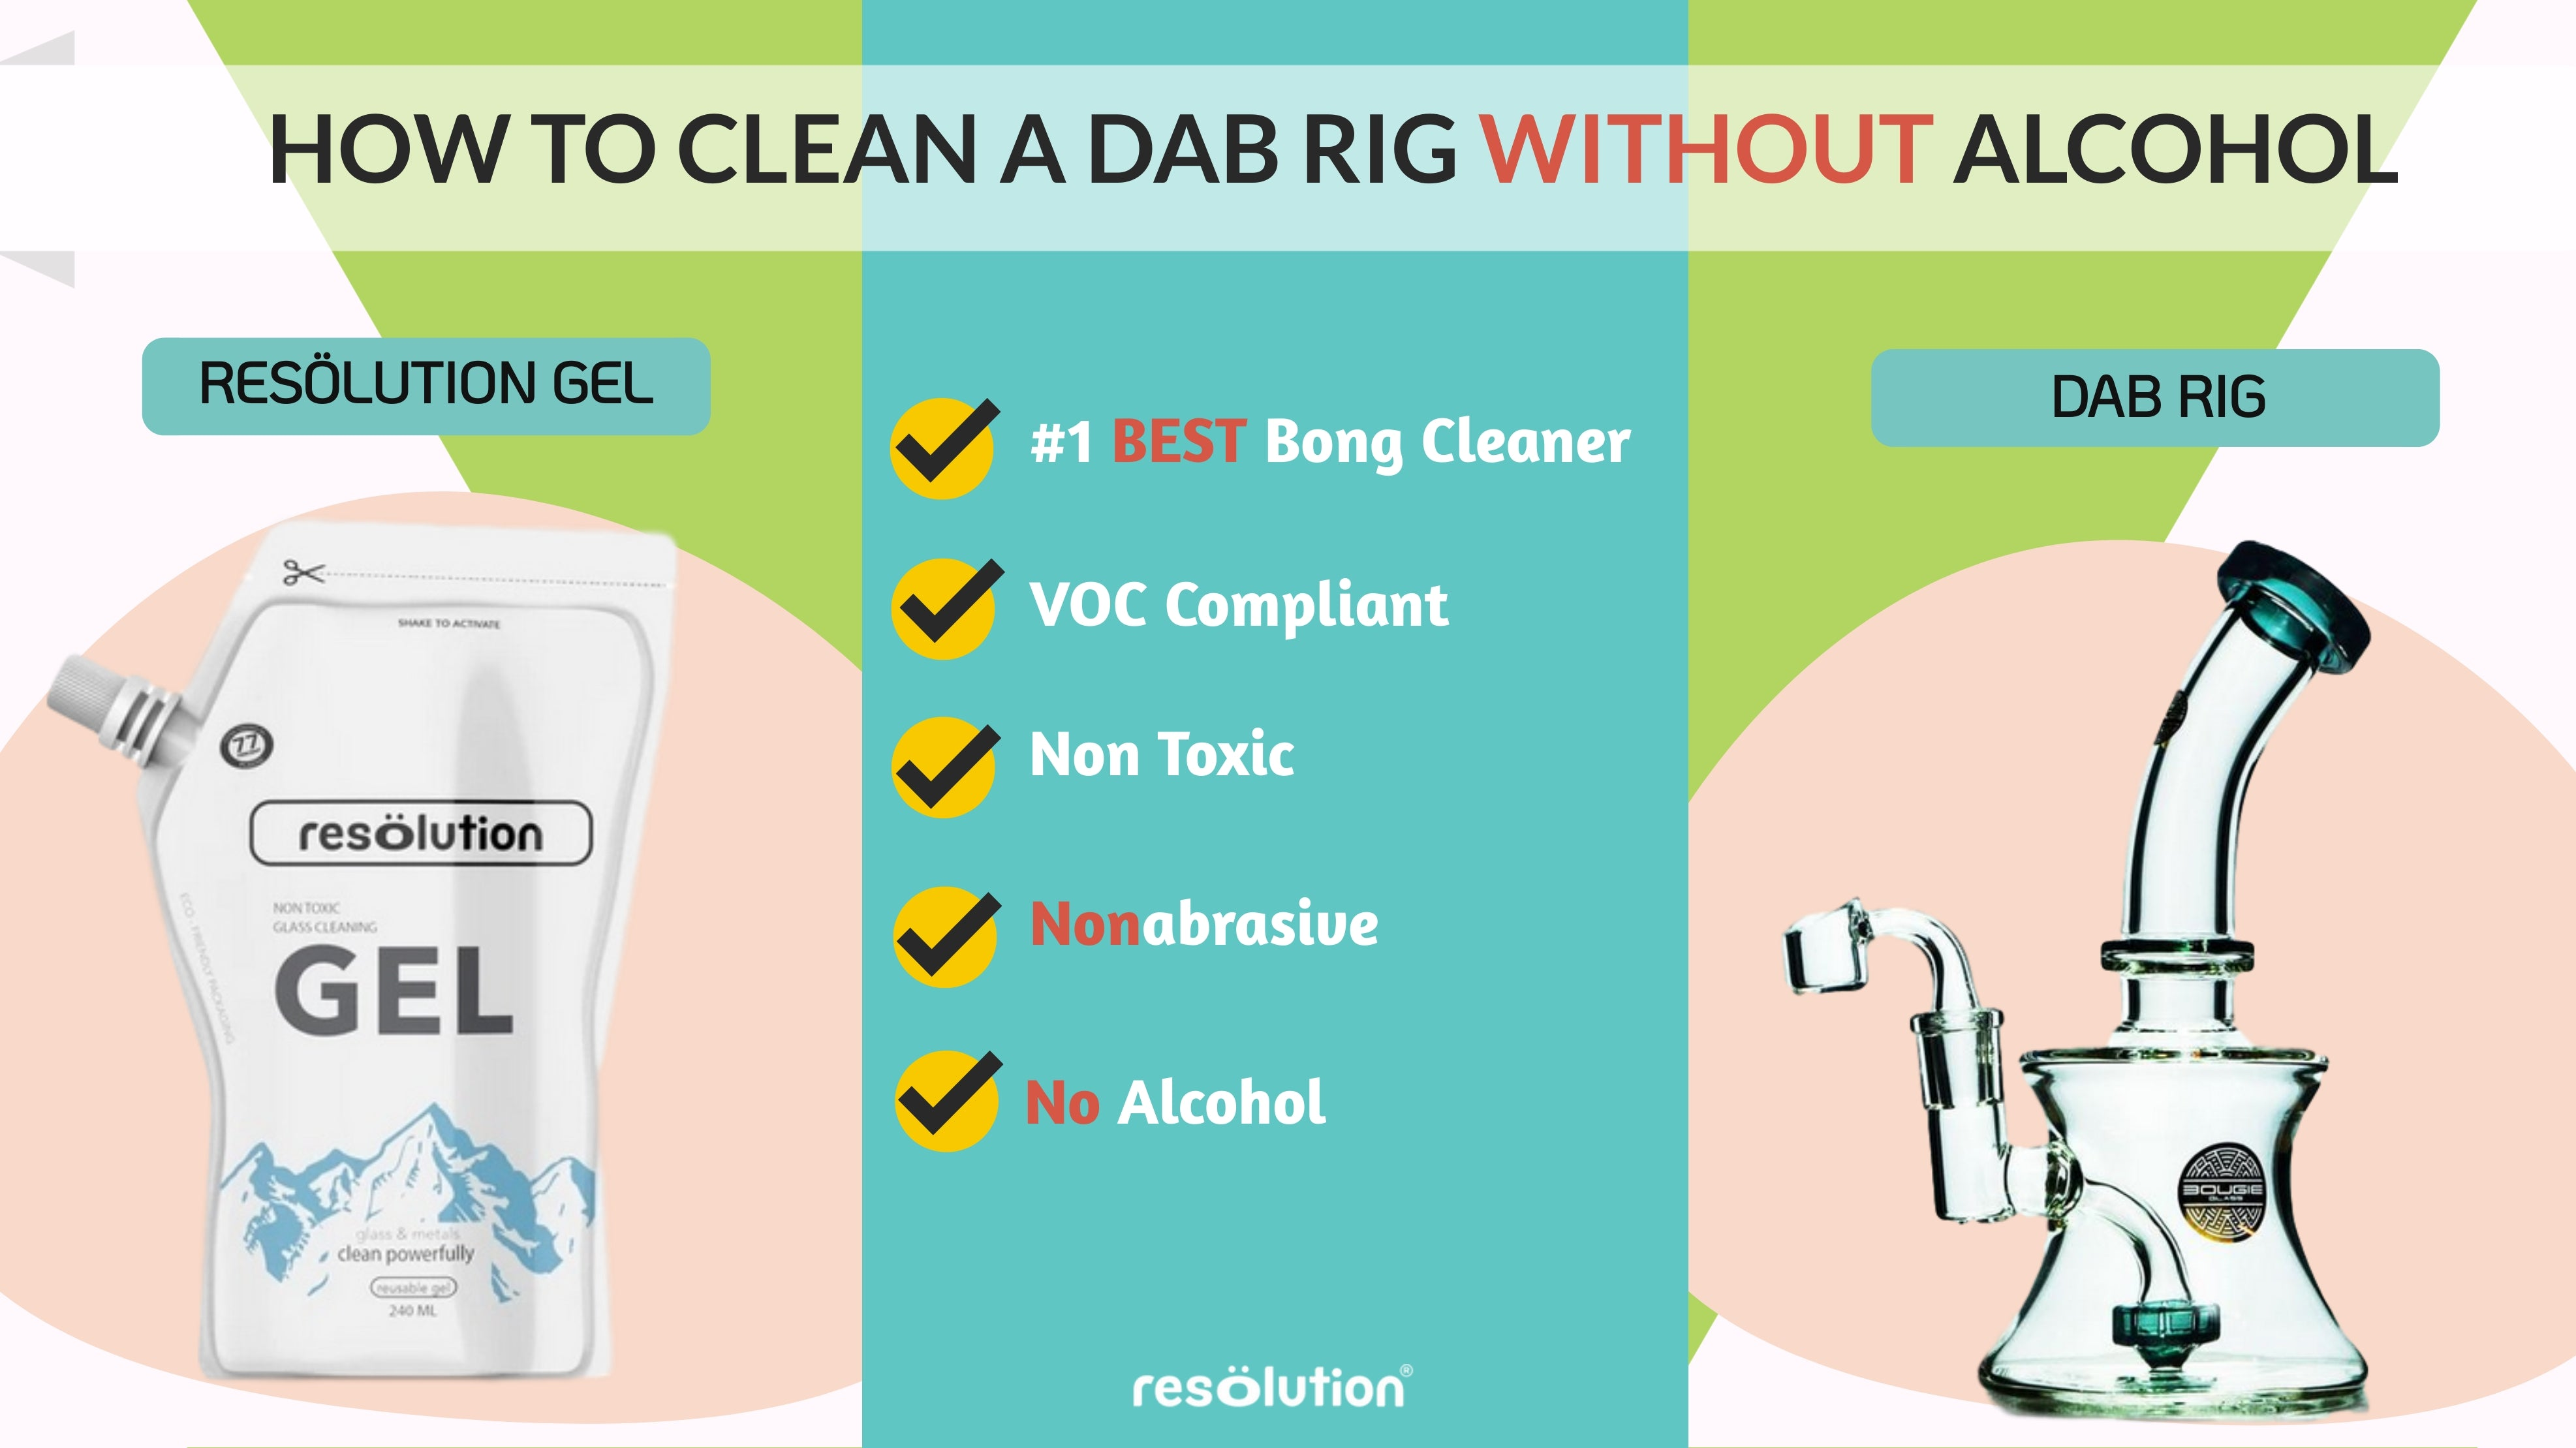 how to clean a dab rig without alcohol